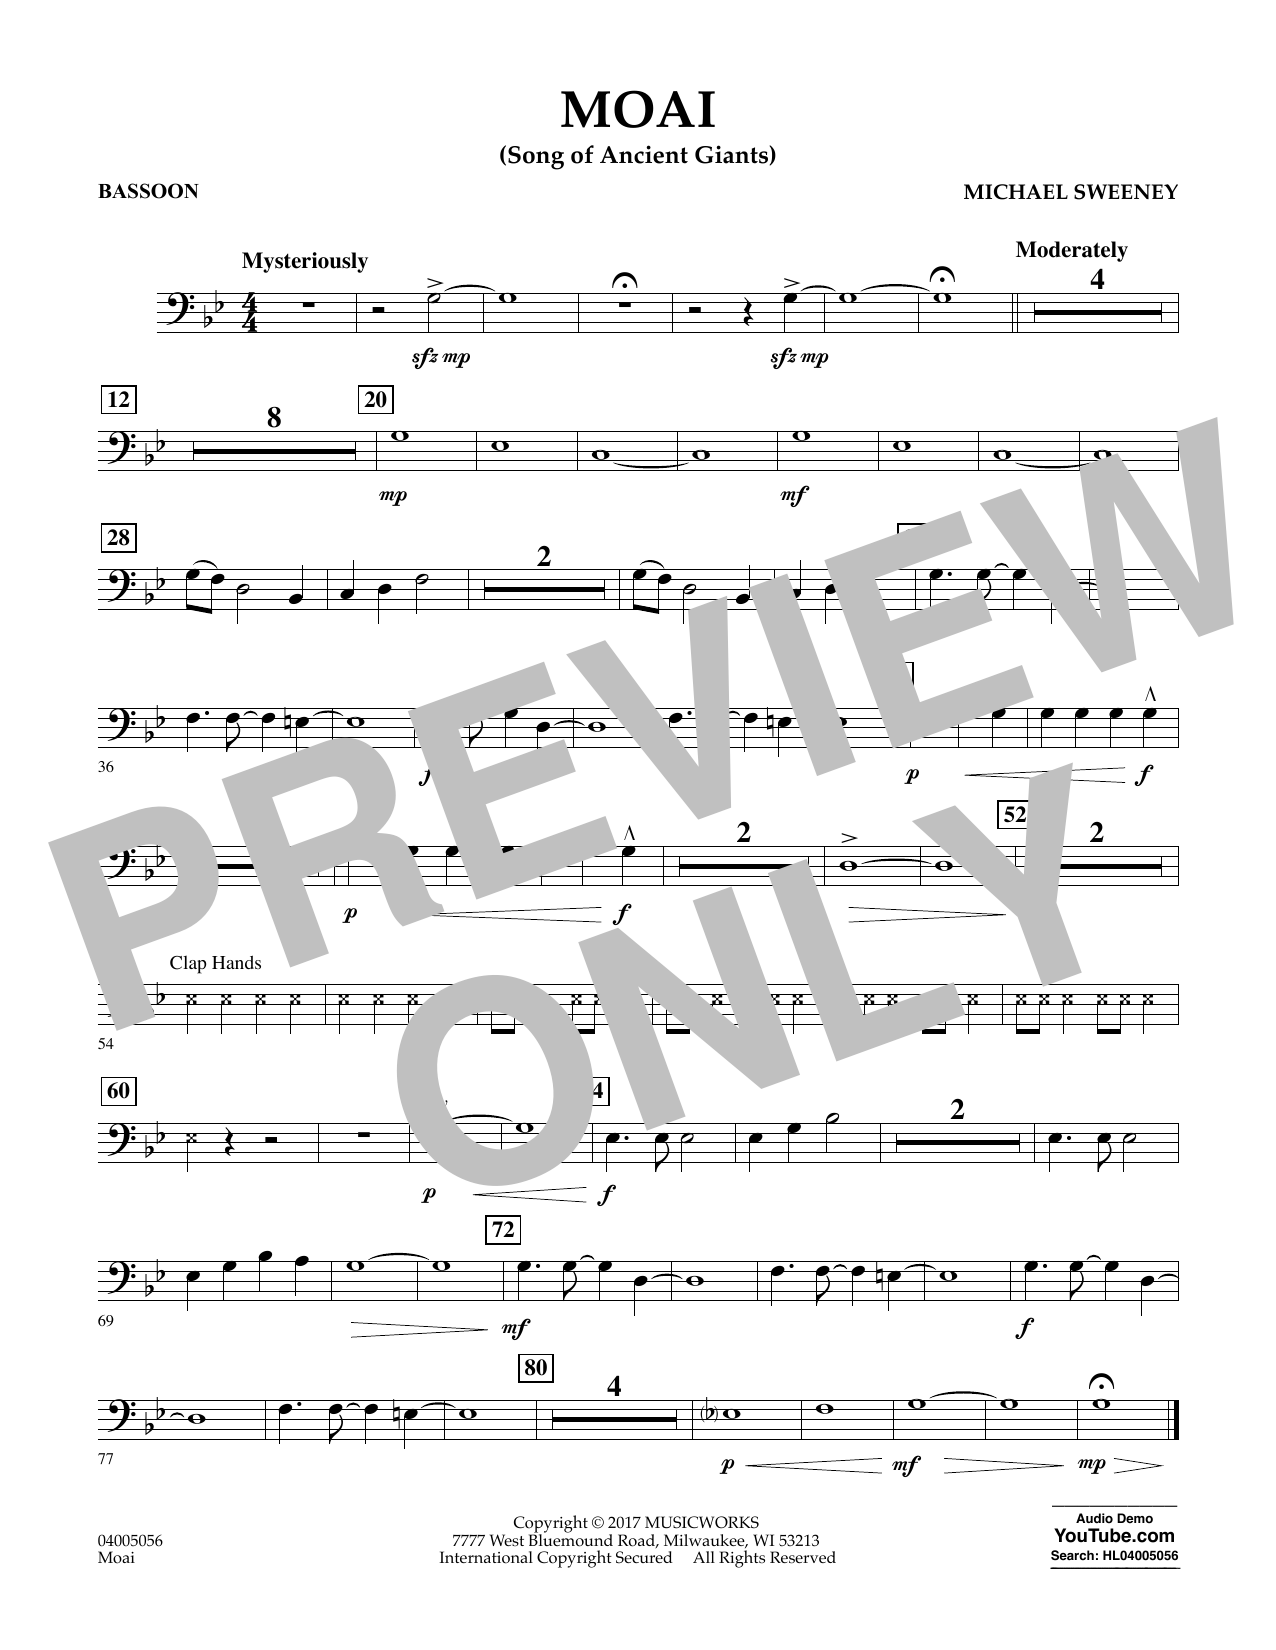 Michael Sweeney Moai (Songs of Ancient Giants) - Bassoon sheet music notes and chords. Download Printable PDF.